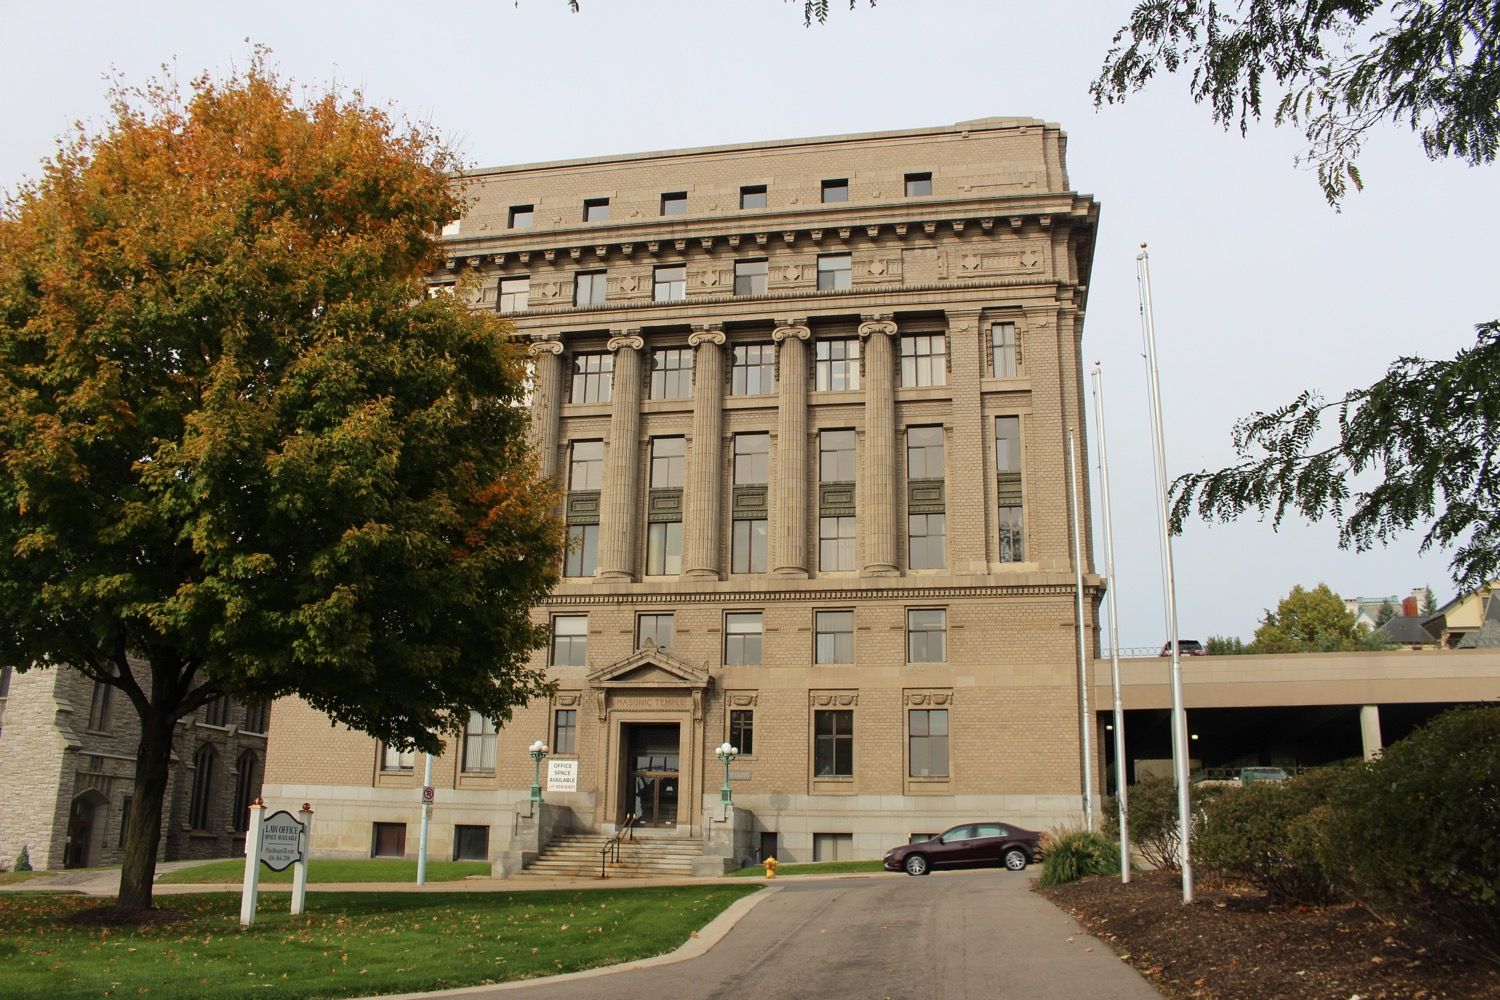 Masonic Temple on East Fulton Street overlooking downtown Grand Rapids